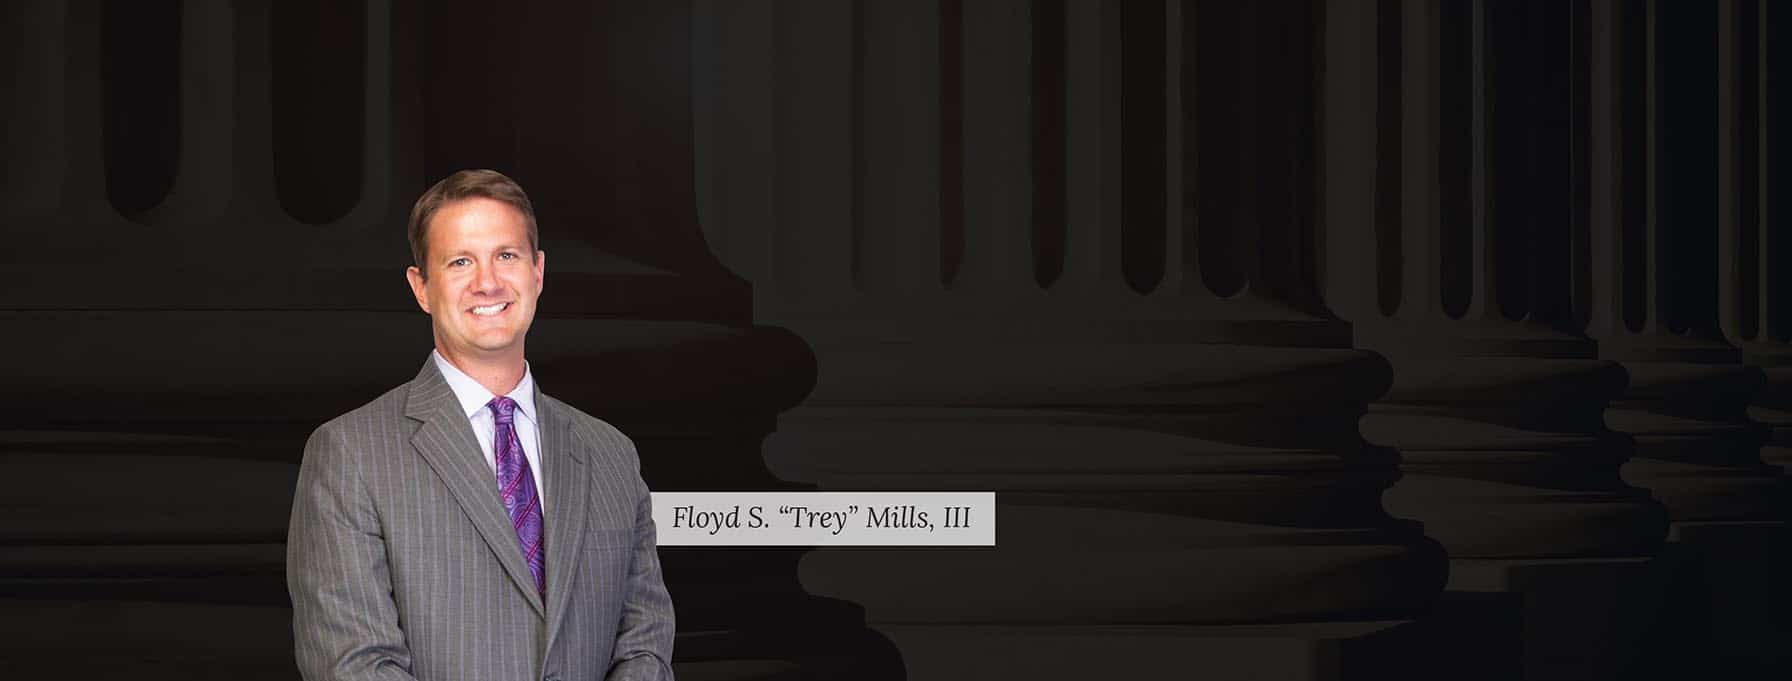 Trey Mills - Trammell & Mills Law Firm in Greenville, SC